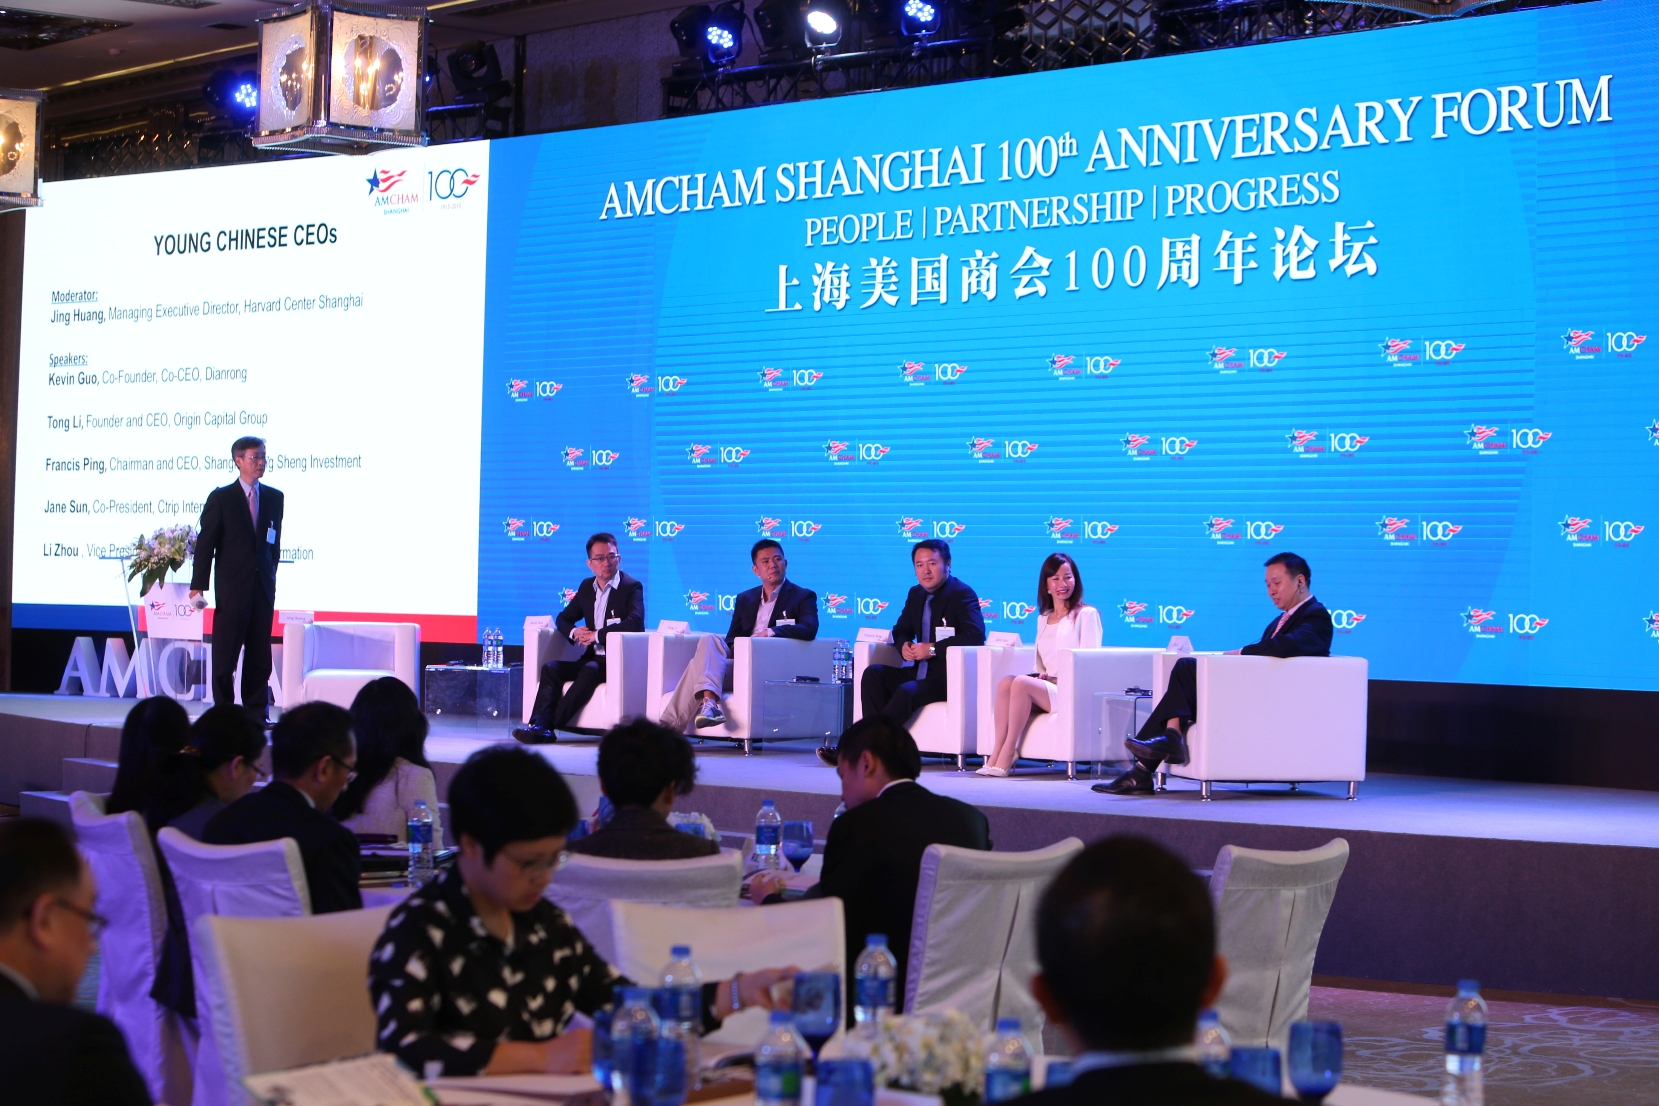 Chairman of Langsheng Mr. Ping Fan was Invited to Attend the AmCham Shanghai 100th Anniversary Forum